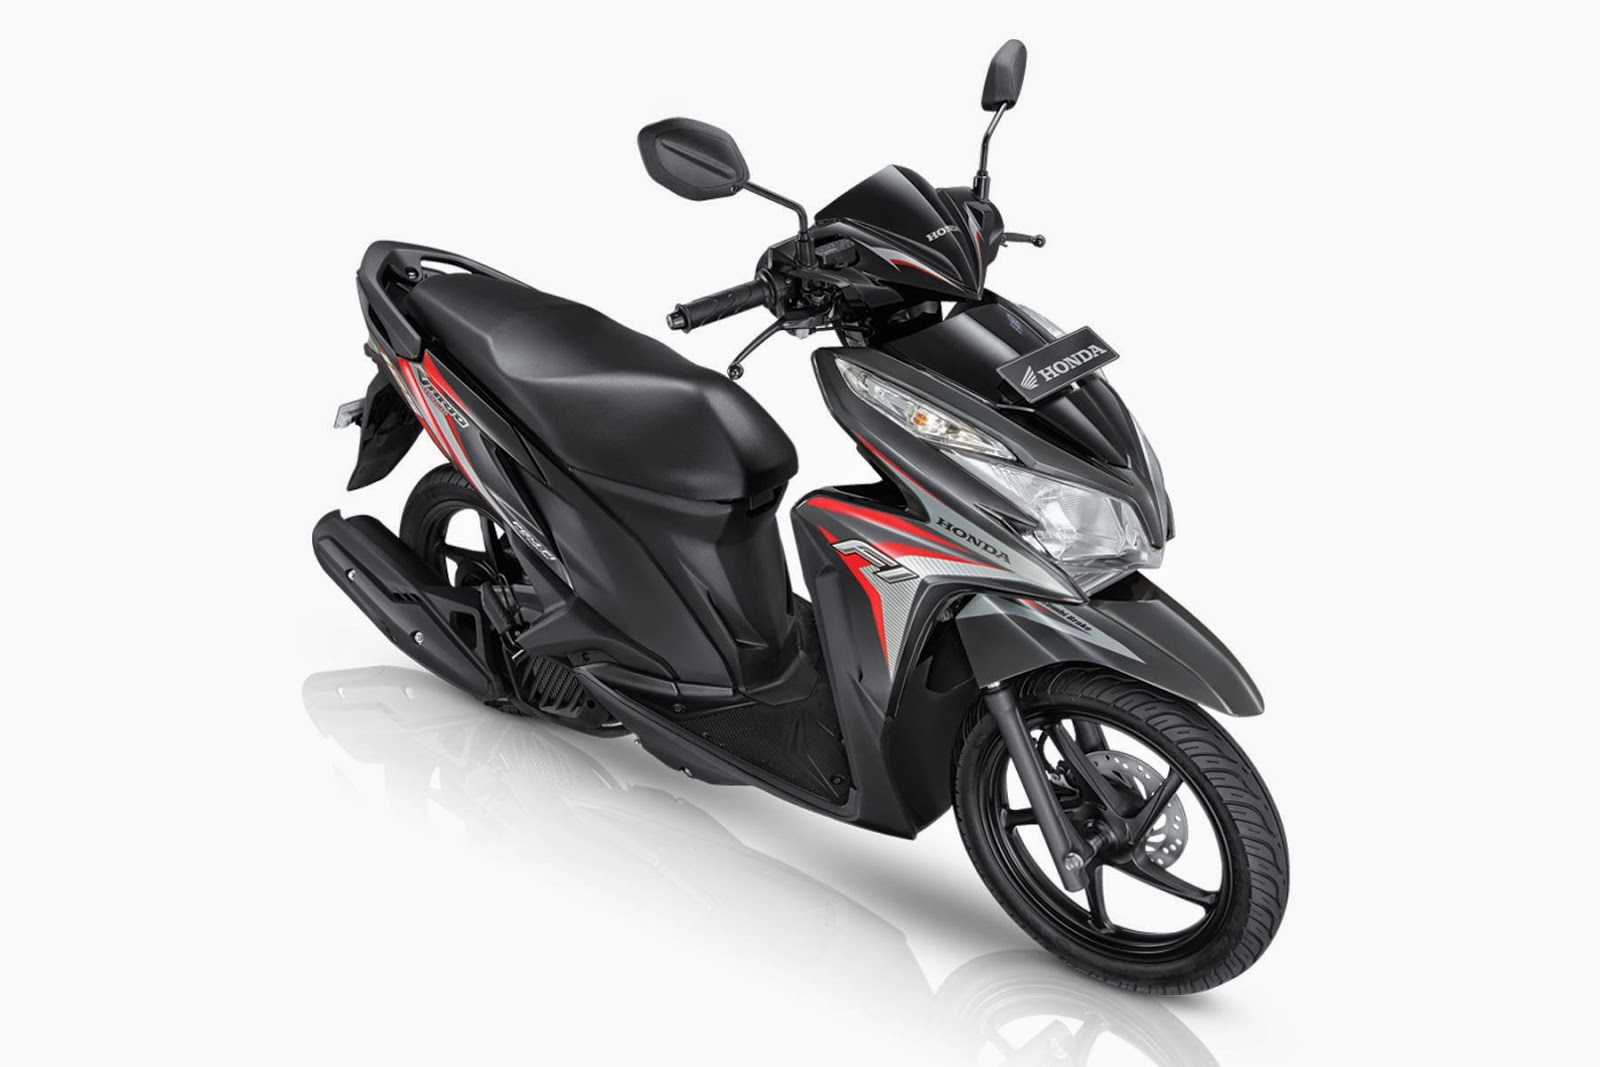 Download Modifikasi Motor Vario Cbs Warna Hitam Terkeren Velgy Motor